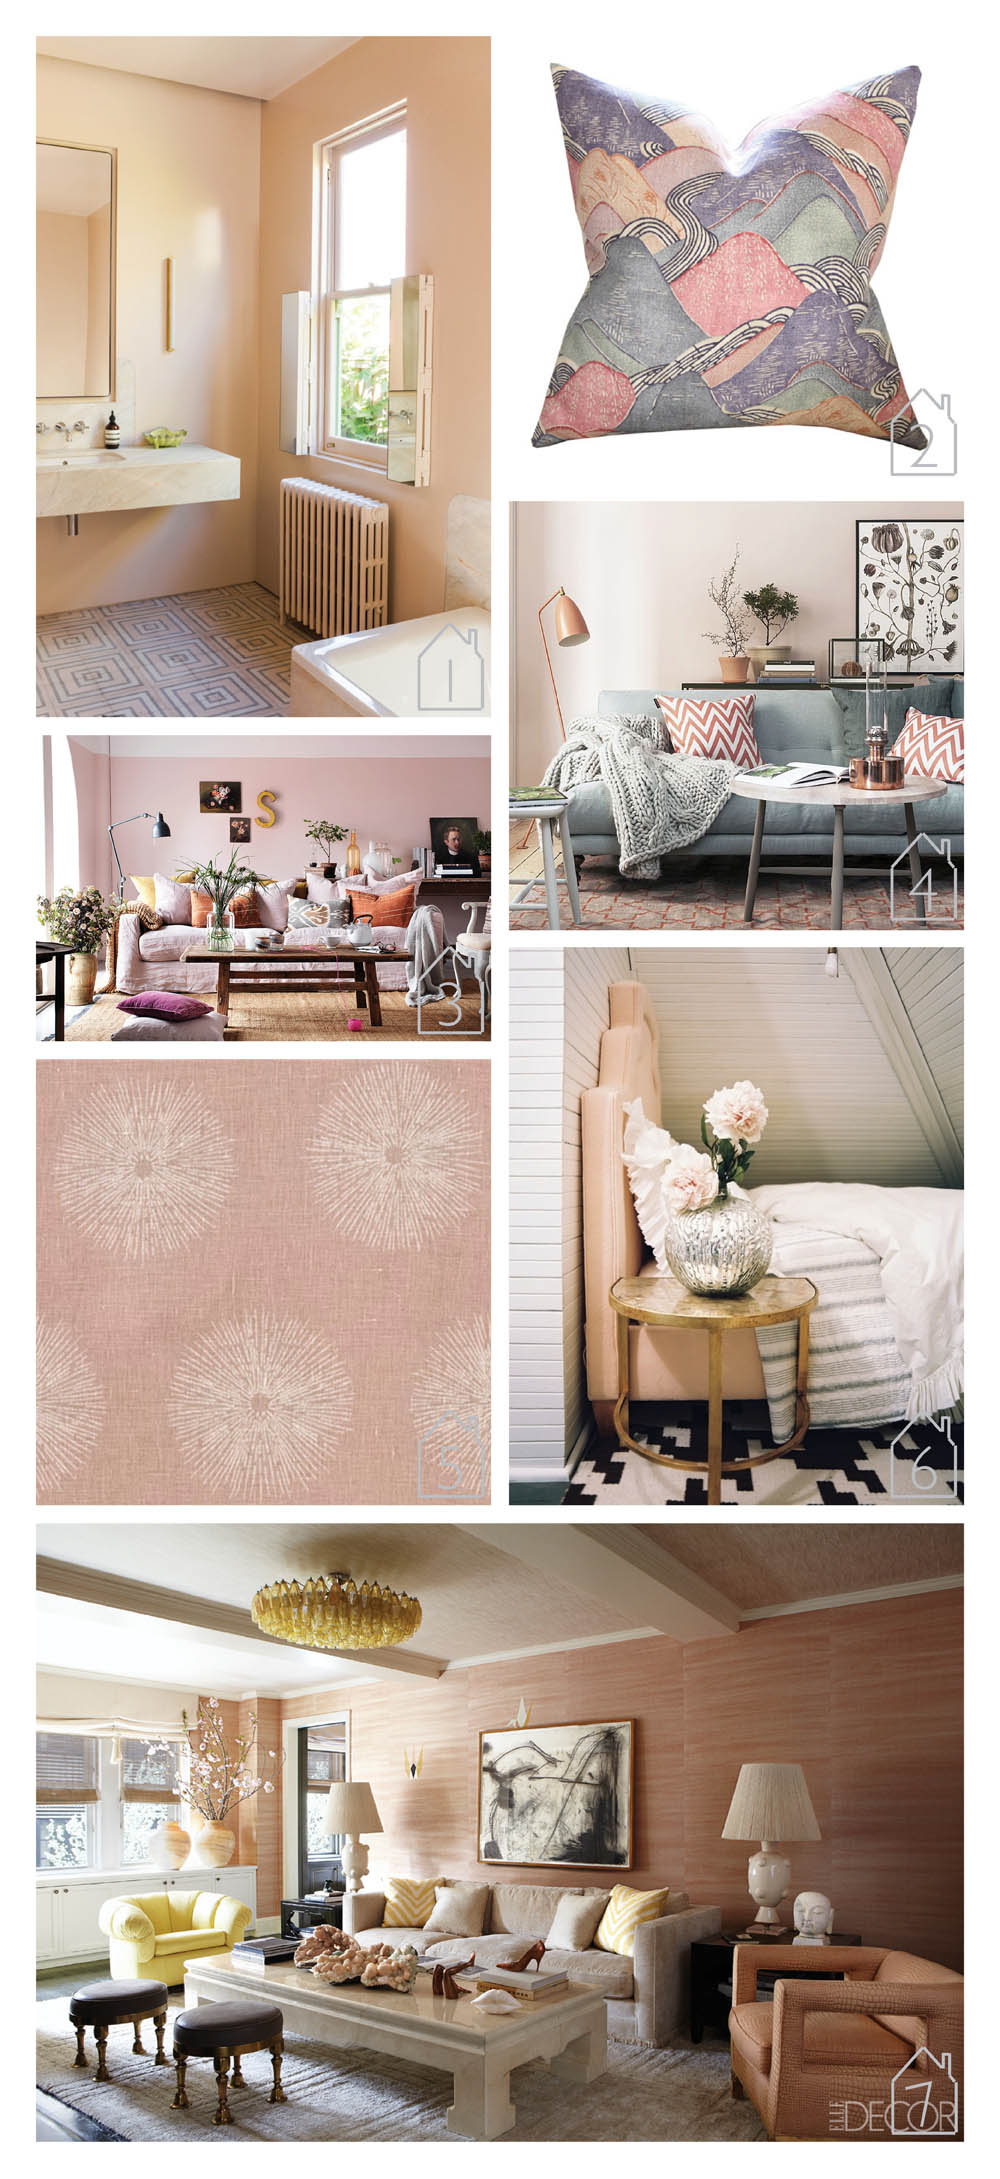 1. Blush bathroom via  Design Files   2.  Kelly Wearstle r edo pillow cover in opal via  Etsy   3. Editorial by  Clive Tompsett   4. Living room via  Solrum   5. Sea Urchin fabric in shell/cream by  Kelly Wearstler  for  Groundworks   6. design by  Lisa Sherry  - photo by Patrick Cline via  Lonny  7. Cameron Diaz's Manhattan apartment designed by  Kelly Wearstler  via  Elle Decor